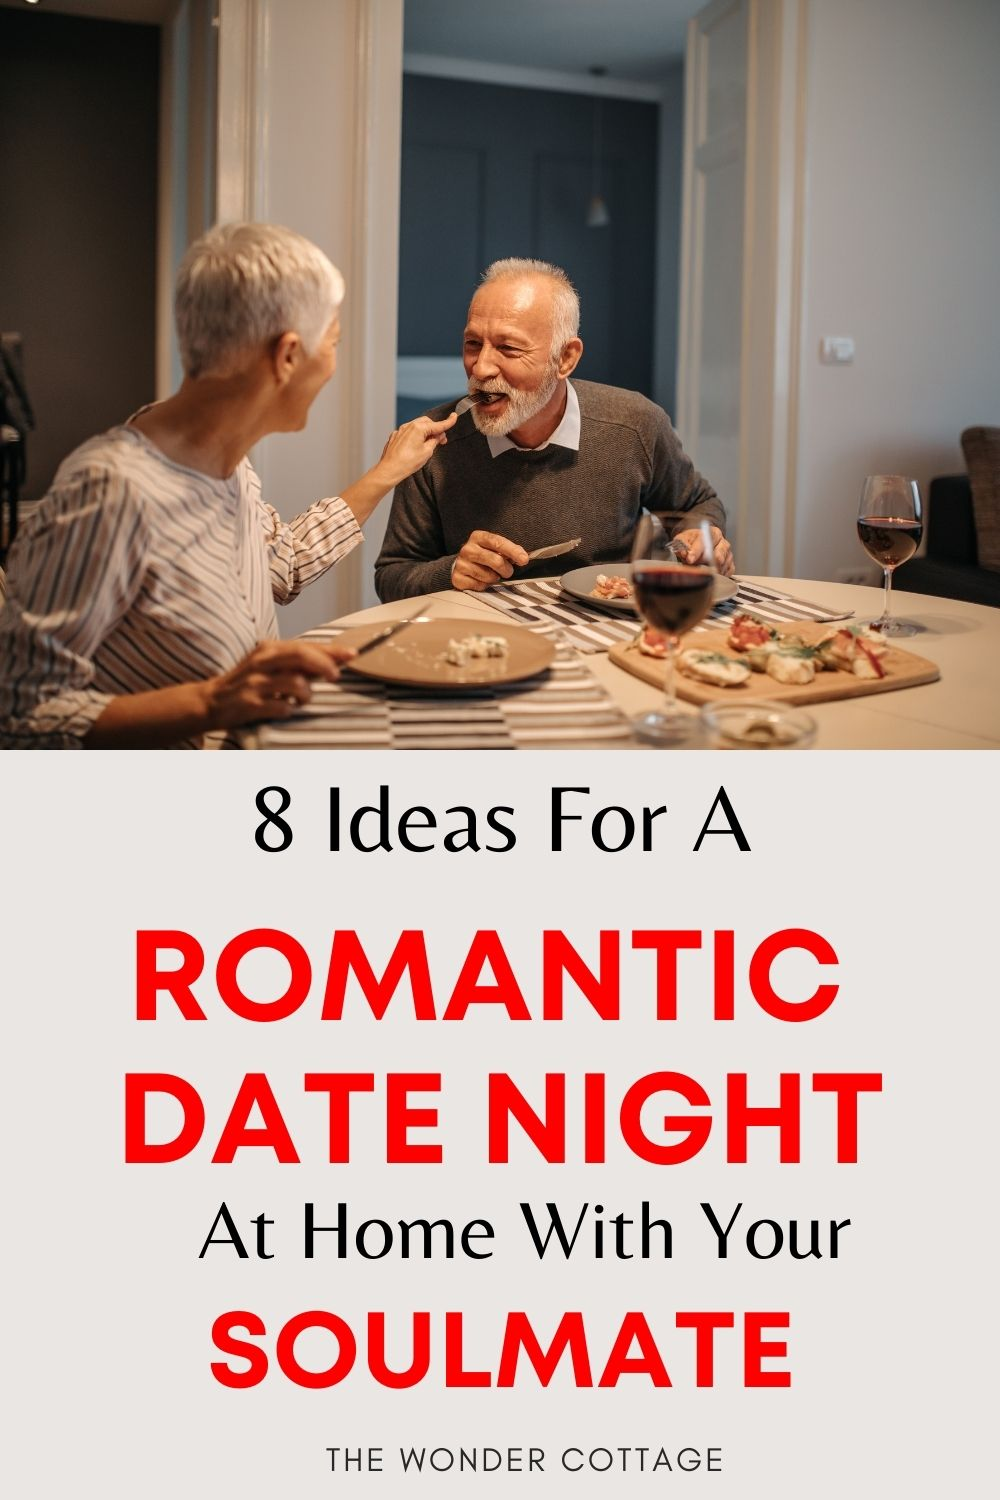 8 ideas for a romantic date night at home